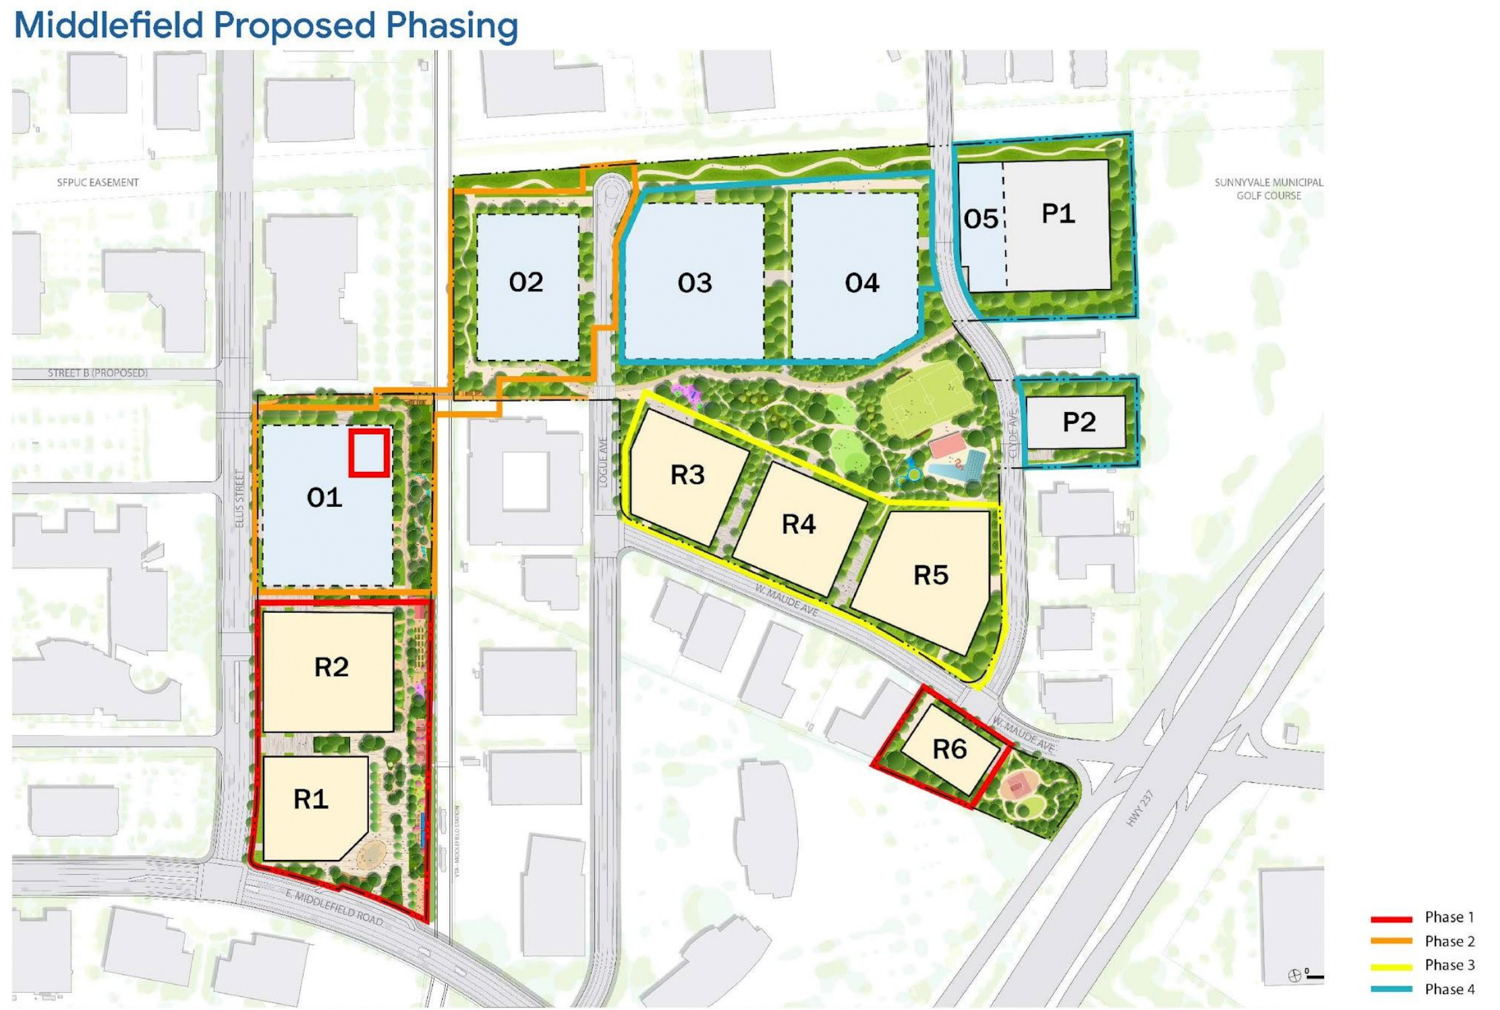 Google Middlefield Park proposed phases and plan, image courtesy Google